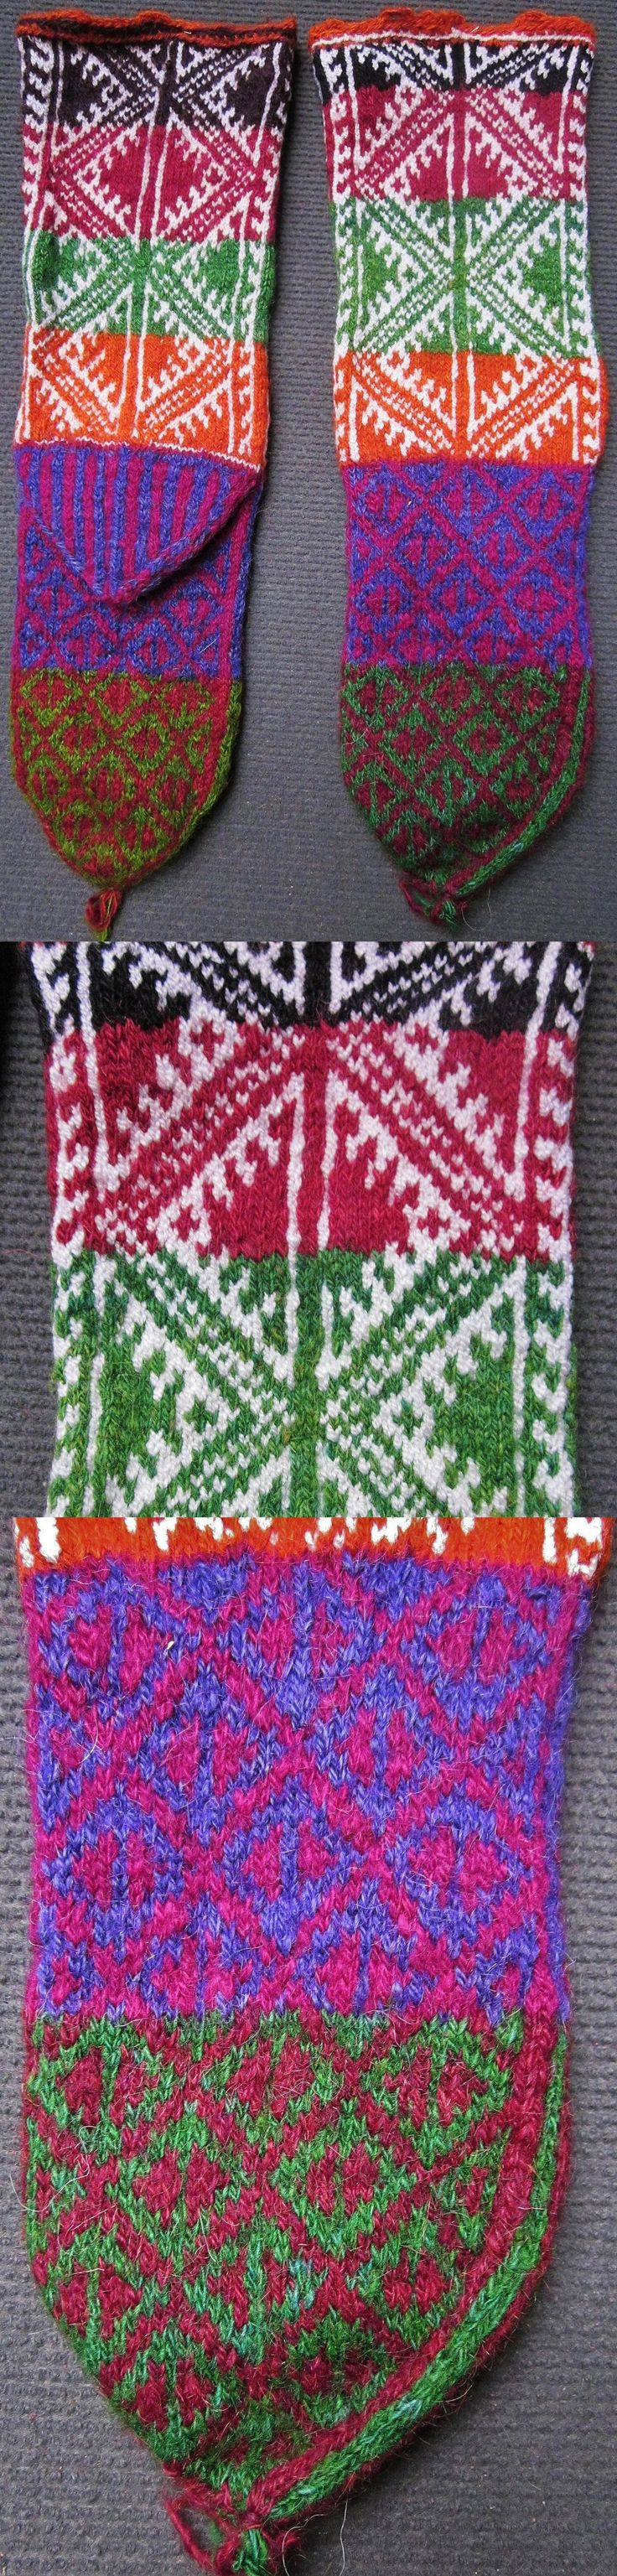 Traditional hand-knitted woollen stockings, for men.   From the Konya province.  Late 20th century.  The composite pattern shows various diamond-shaped 'ayna' (mirror), which are a protection against the evil eye. (Inv.nr. çor015 - Kavak Costume Collection - Antwerpen/Belgium).